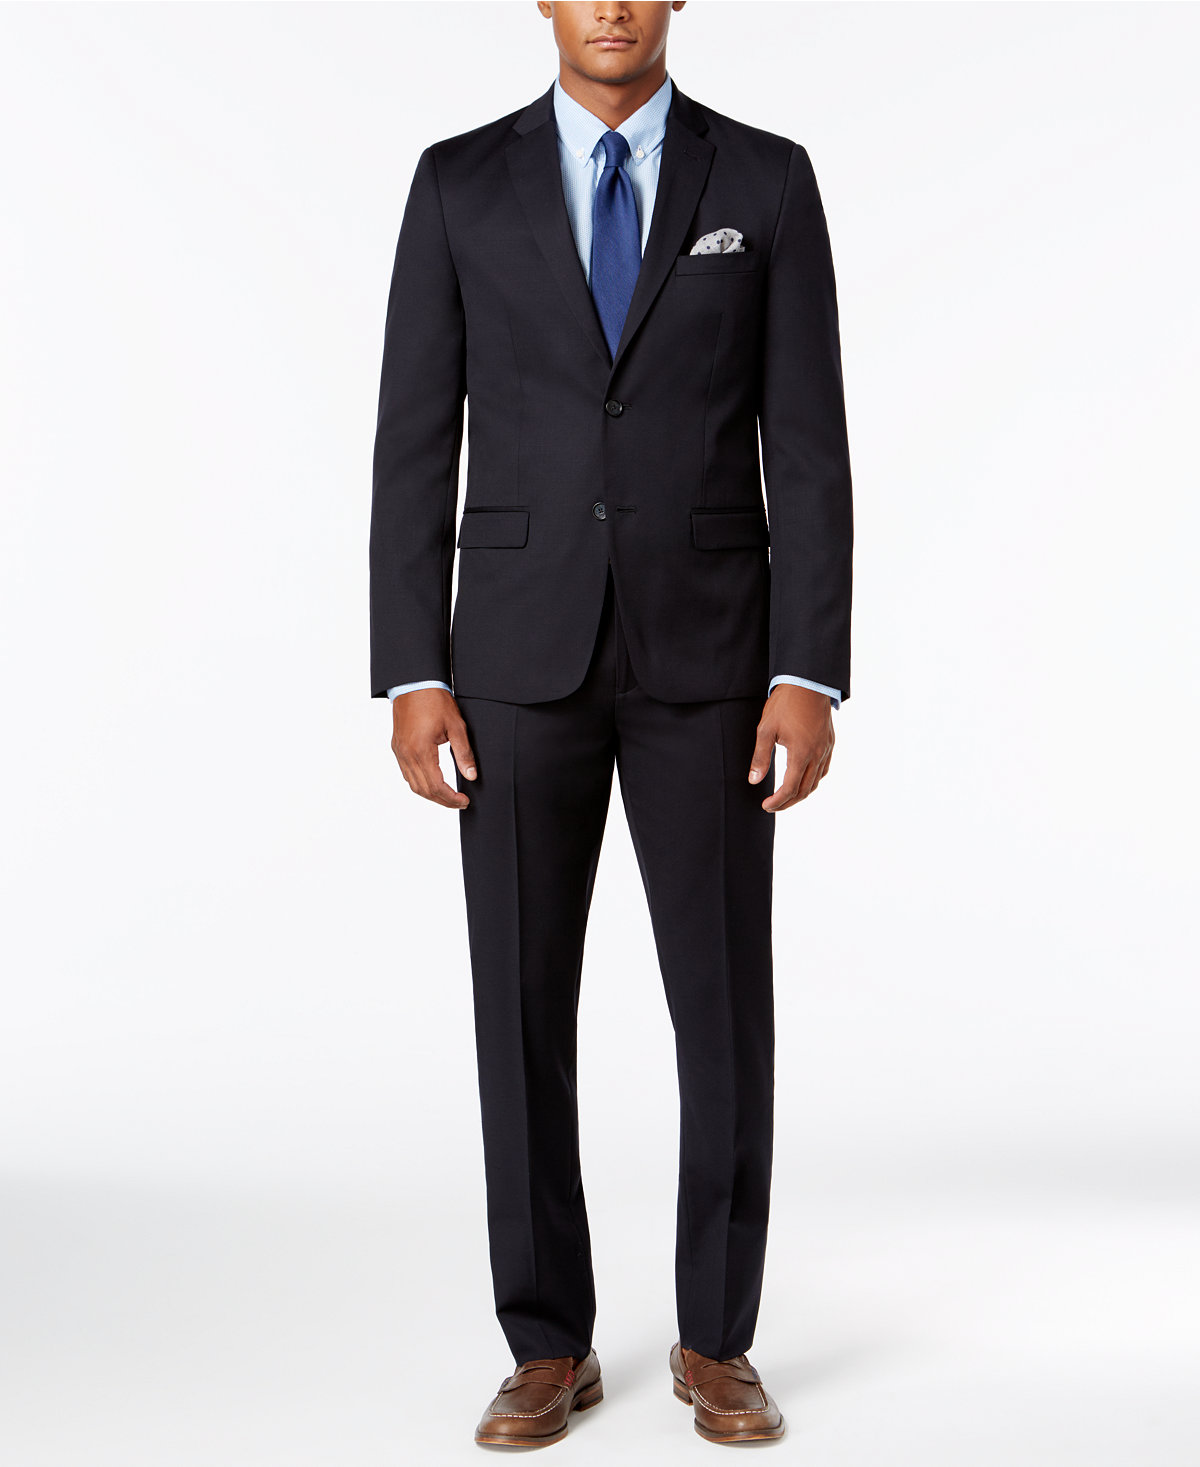 Tommy Hilfiger Mens Modern-Fit Stretch Suit